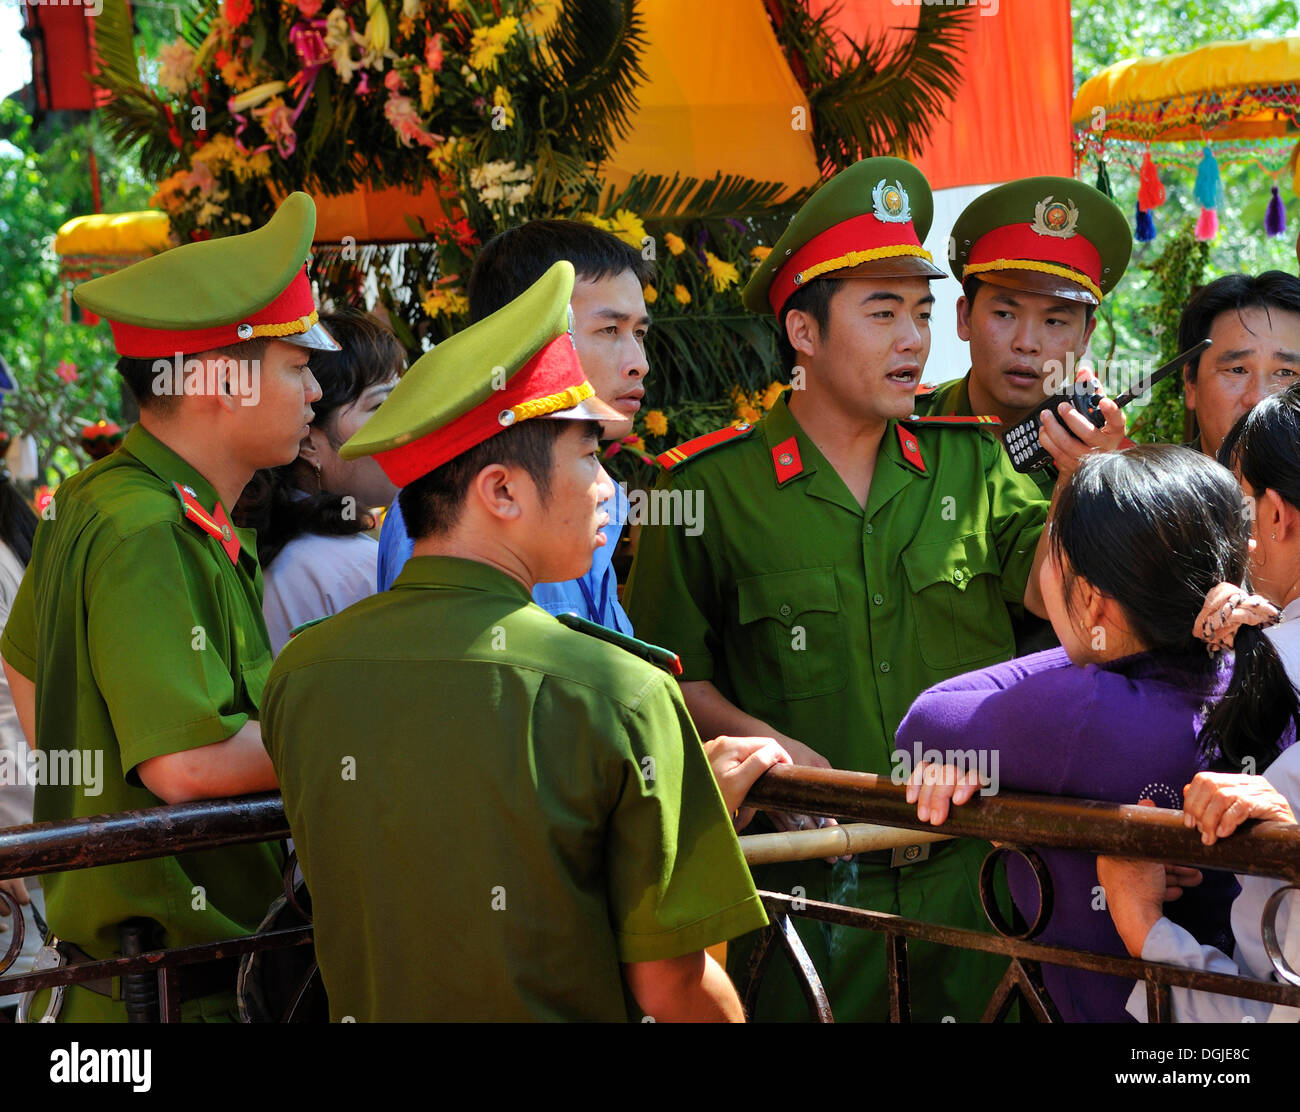 Police officers maintaining order at the largest and most important religious festival of the Cham, Po Nagar Temple, - Stock Image